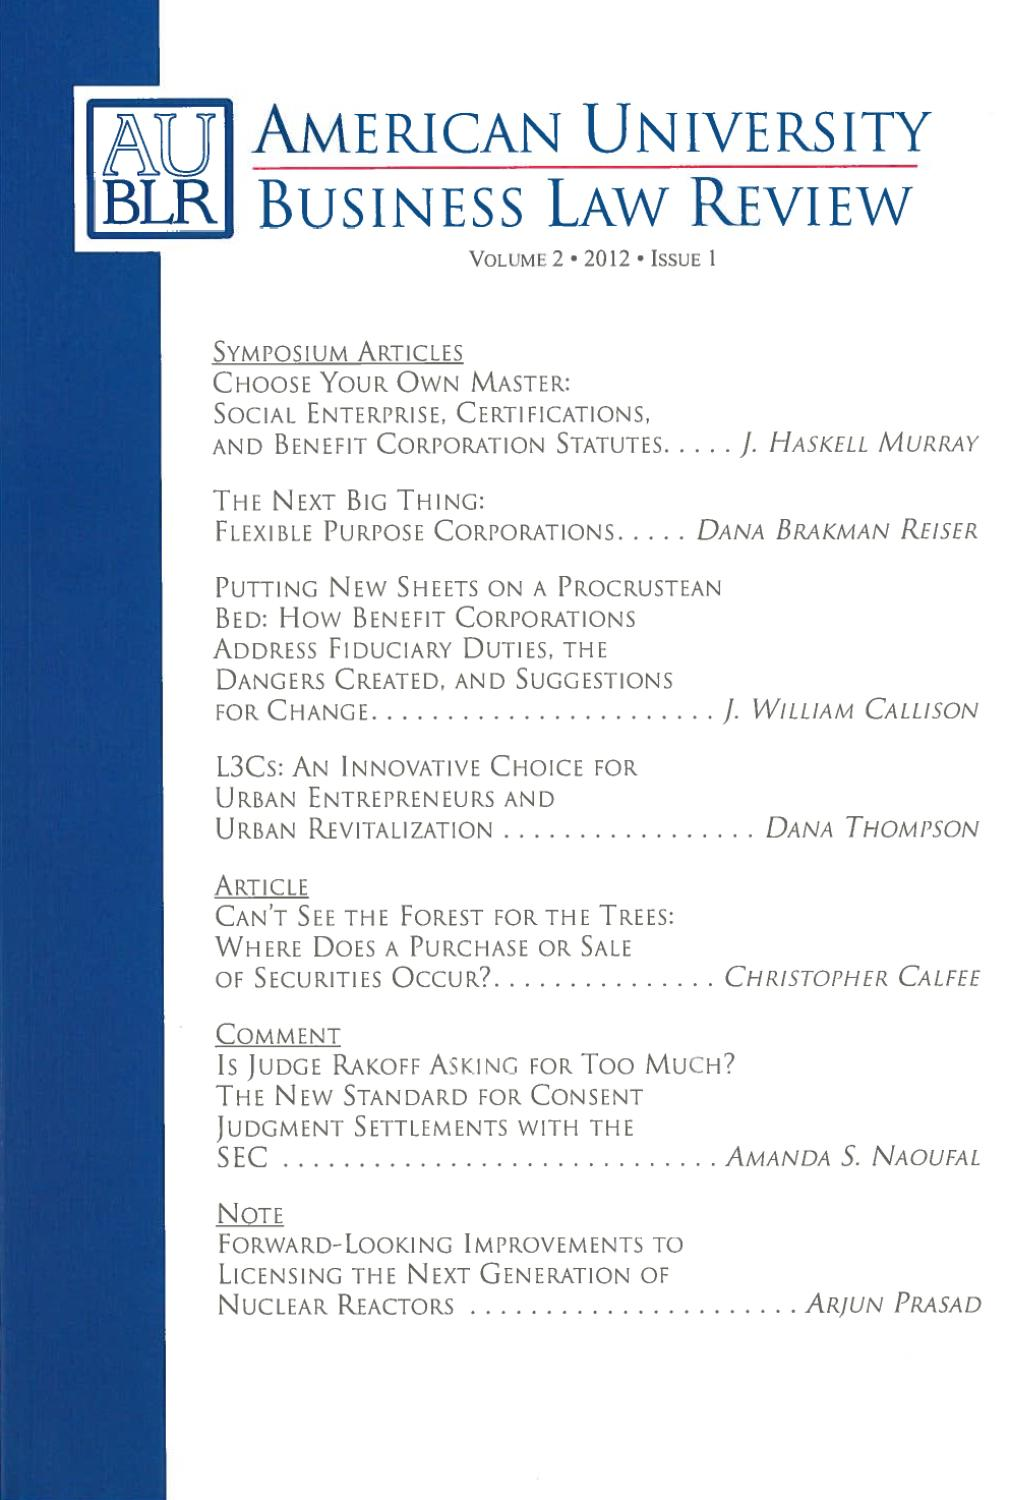 business law review Now published by springer the european business organization law review (ebor) is a leading european publication addressing all legal aspects of business organization the journal serves as a platform for articles, case-notes and book reviews to stimulate scholarly debate and to reflect the speed of how developments in the field translate.